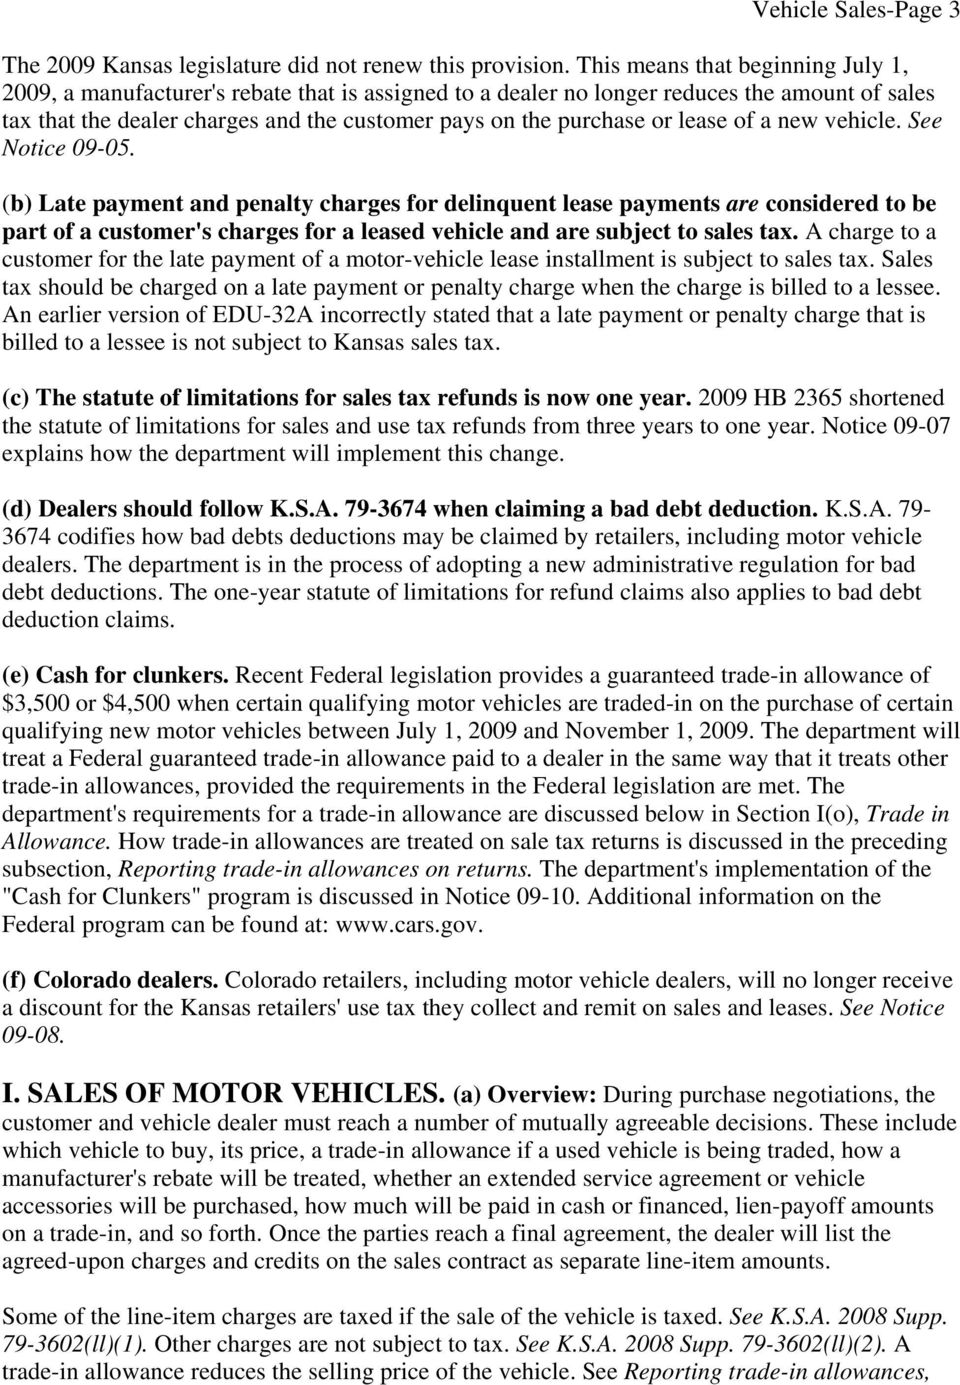 lease of a new vehicle. See Notice 09-05.